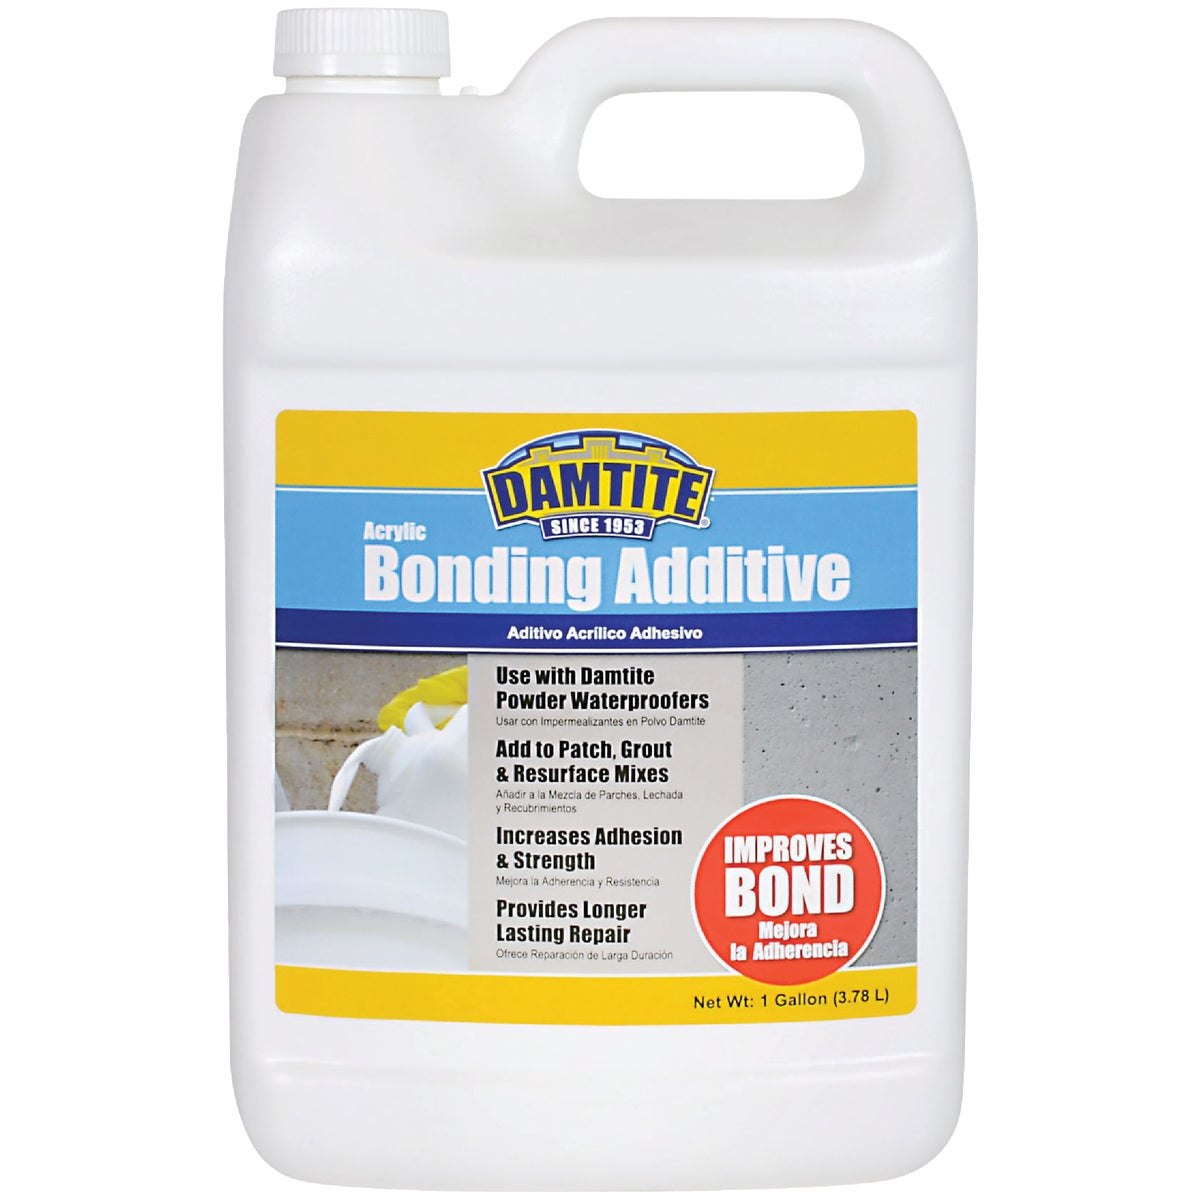 GAL ACRYL BONDING LIQUID - 05370 by Damtite Waterproofng